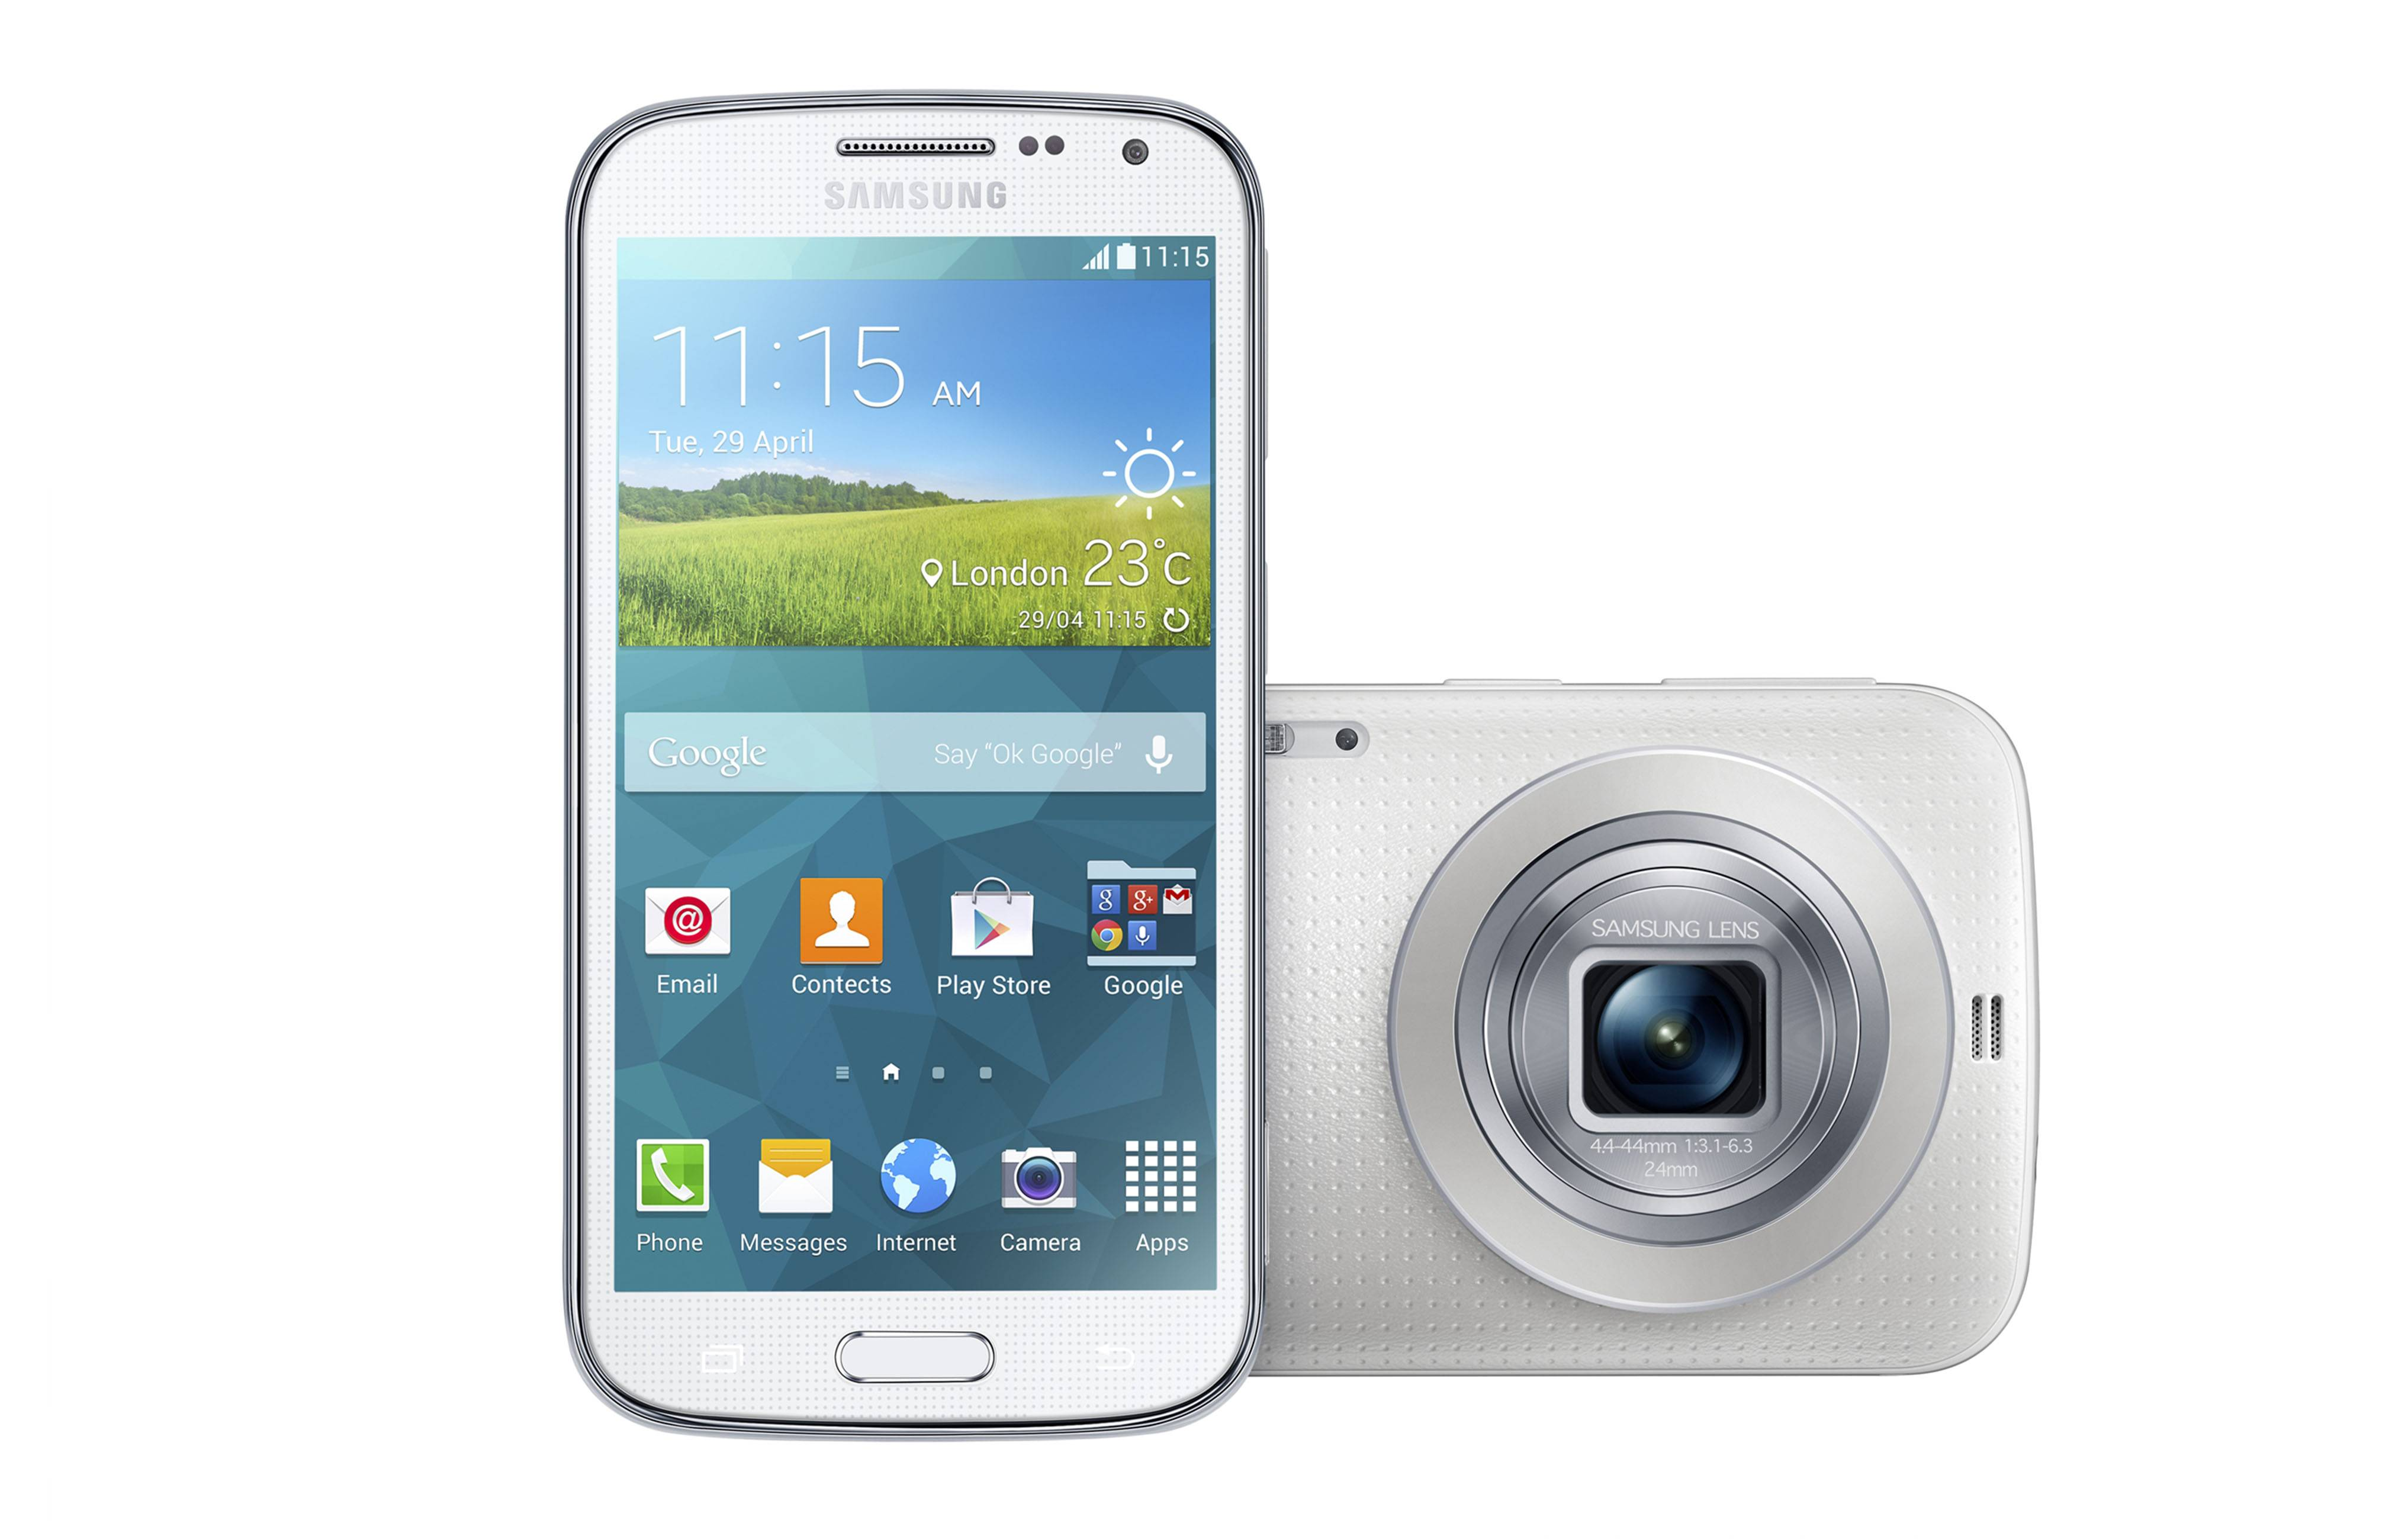 Samsung Galaxy K Zoom Is Here To Capture Memories In Style